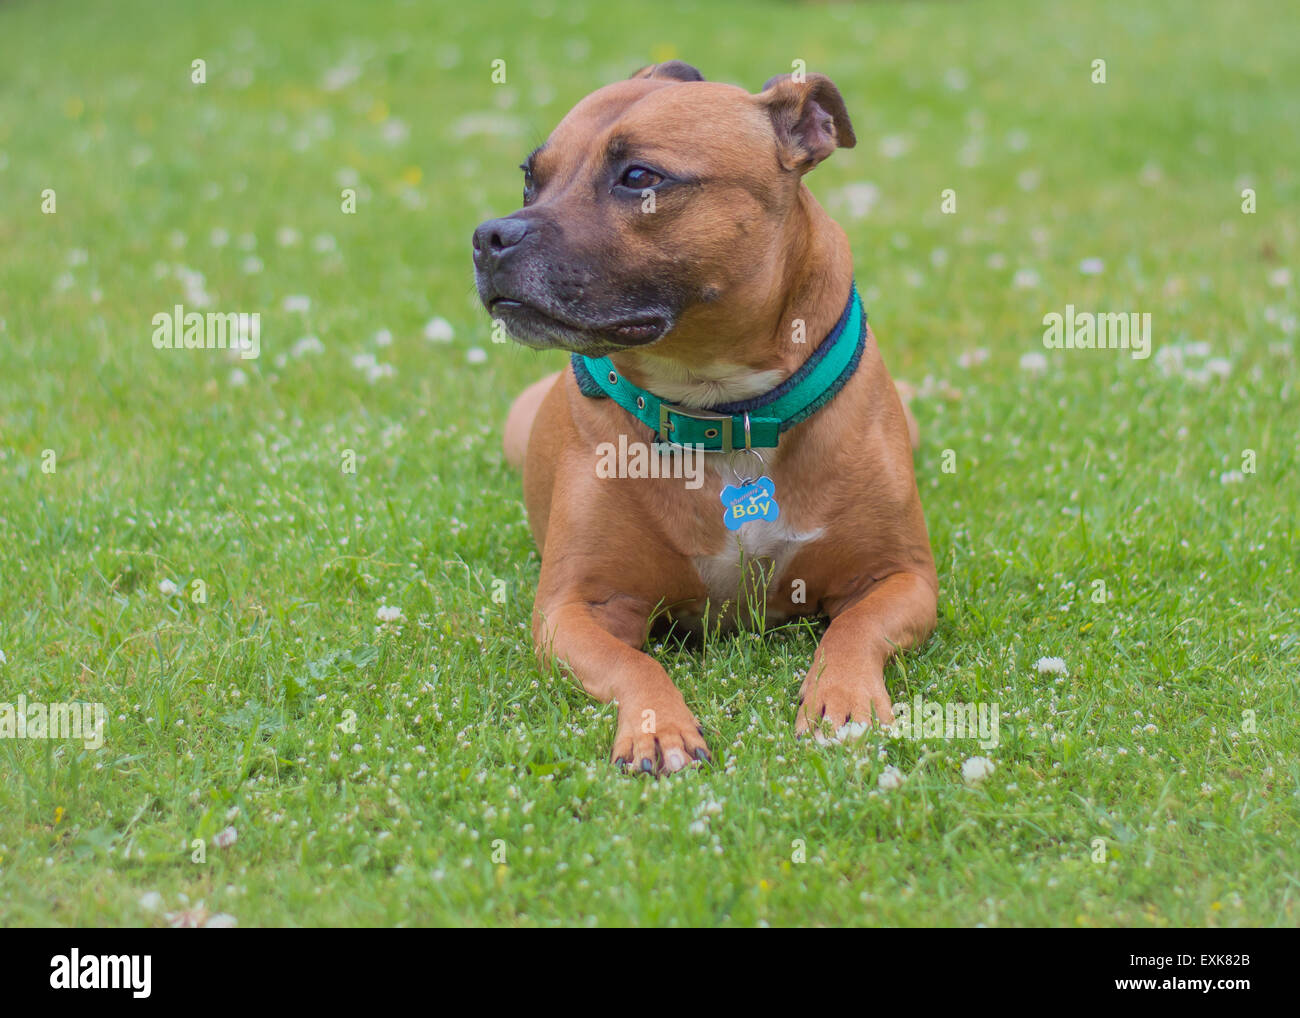 Red Staffordshire Bull Terrier lying in grass - Stock Image